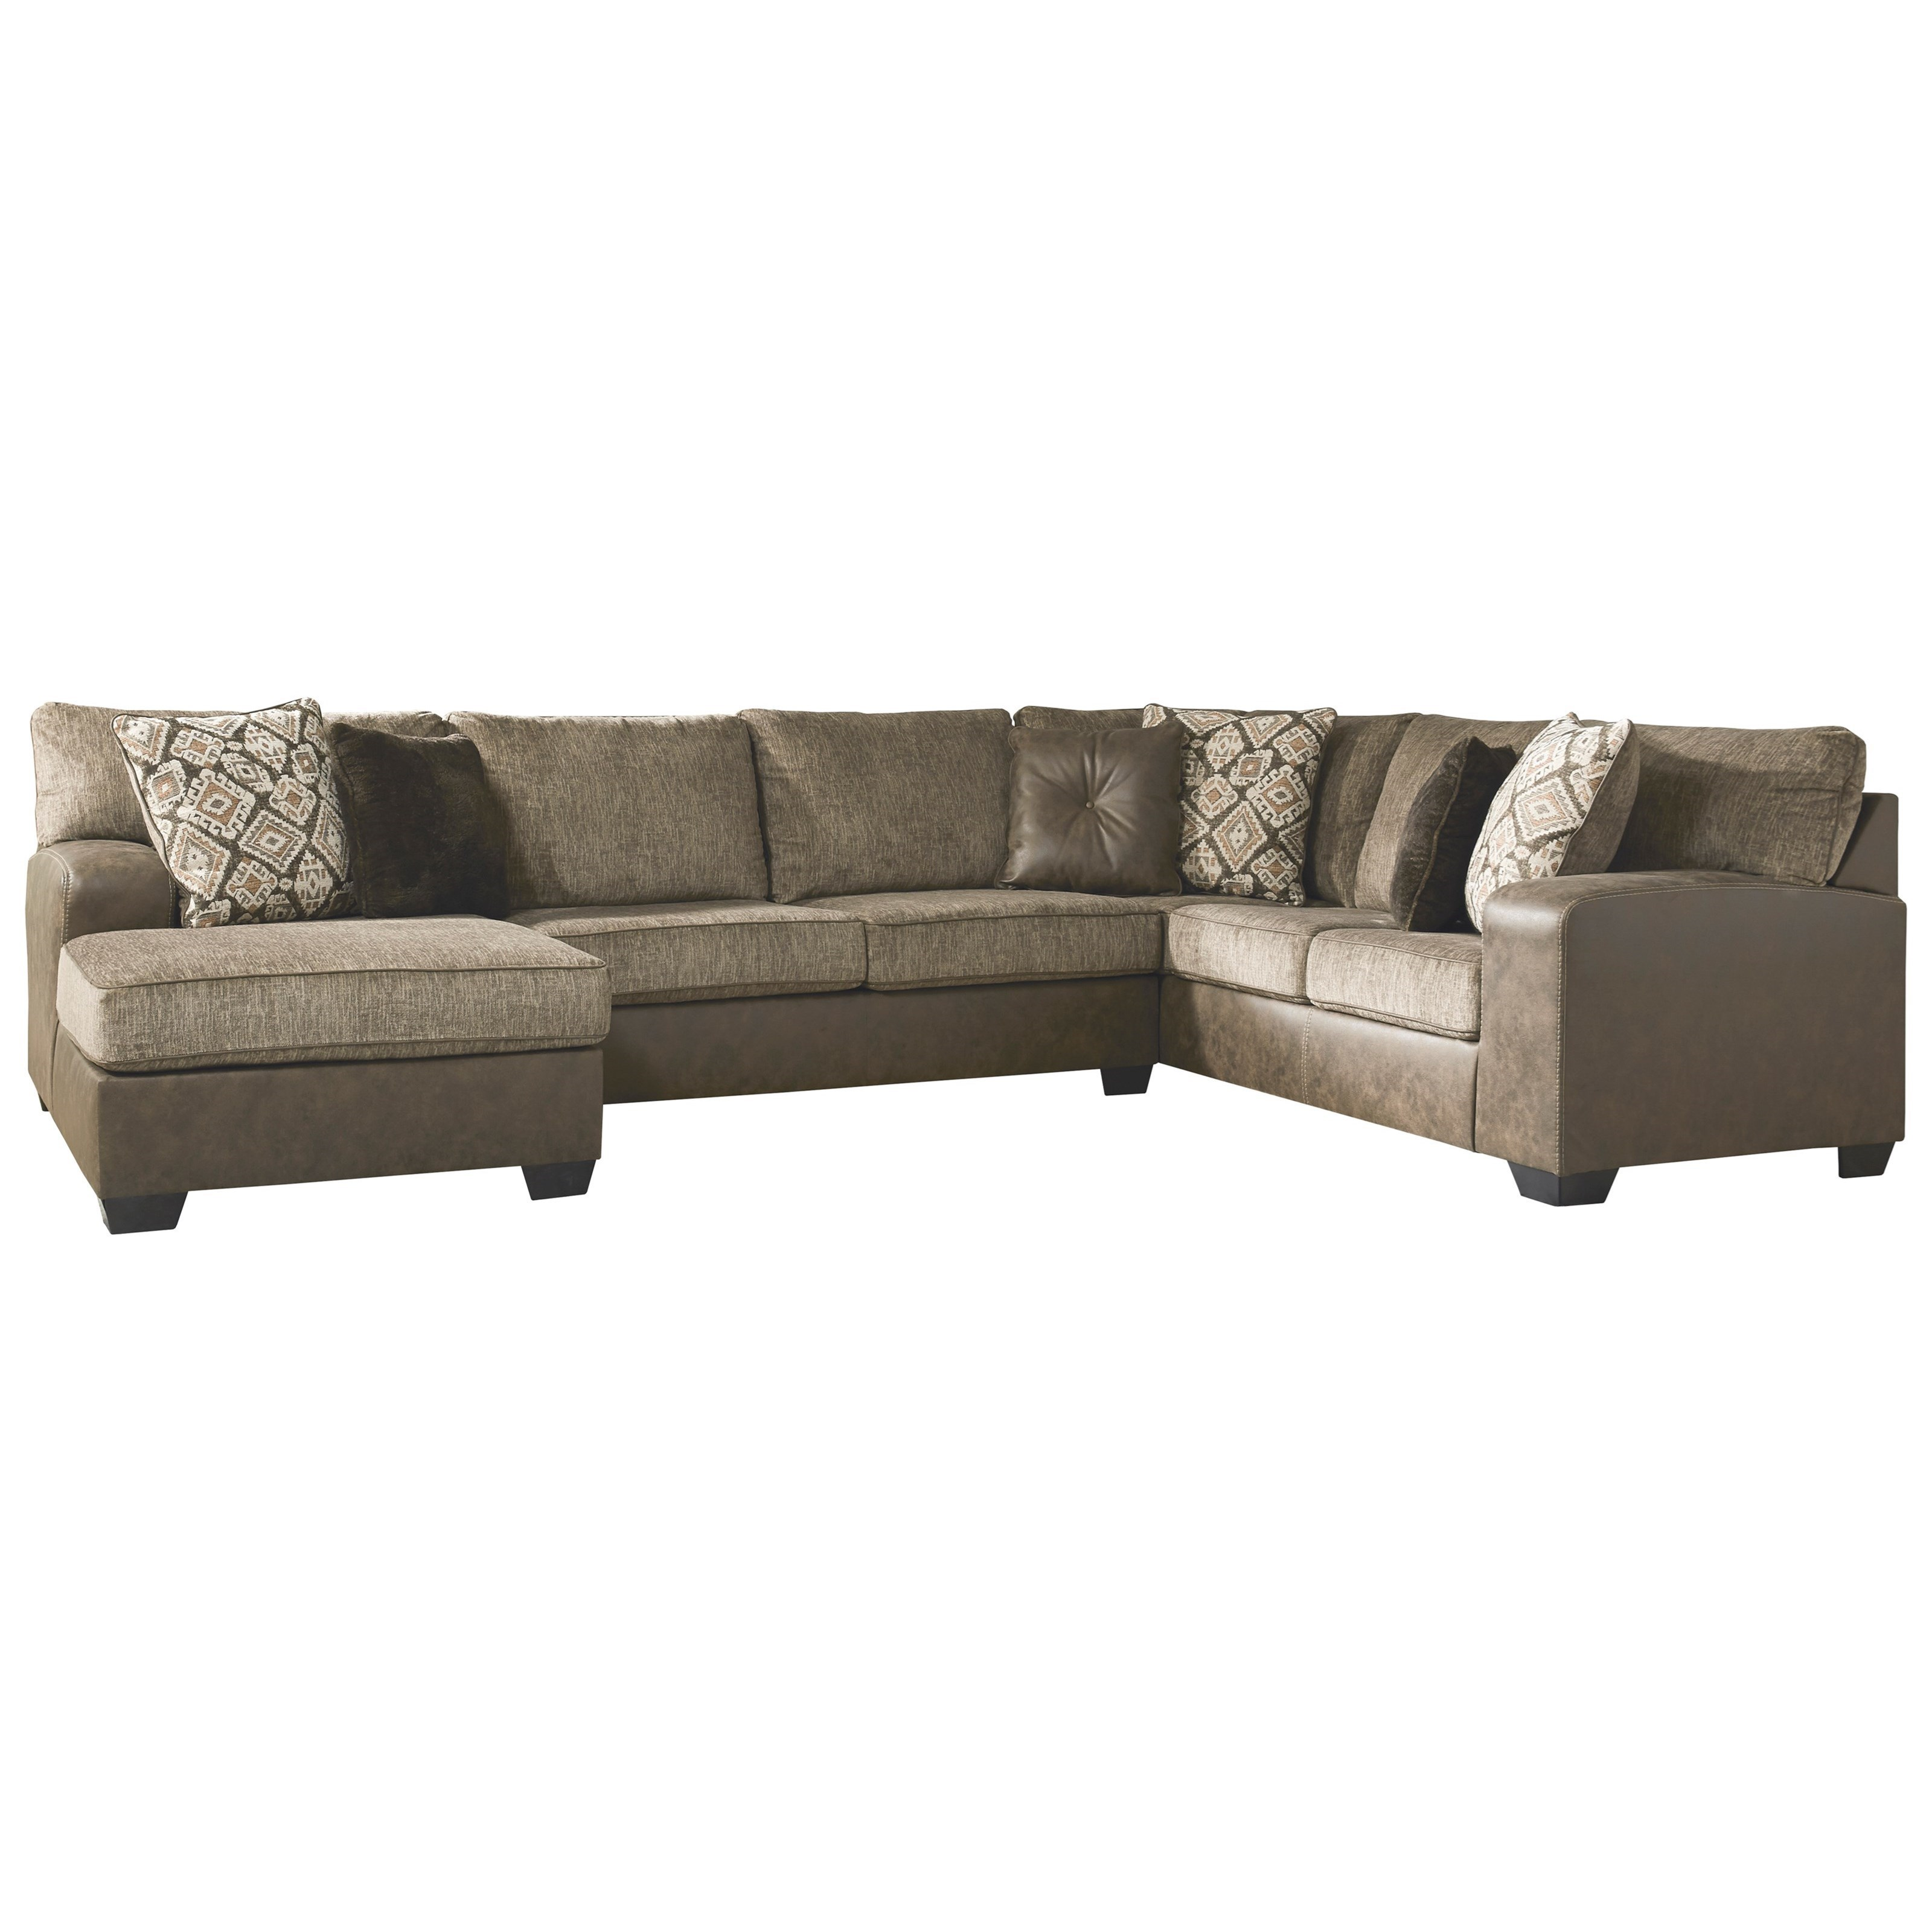 Brown Faux Leather/Fabric 3-Piece Sectional with Chaise